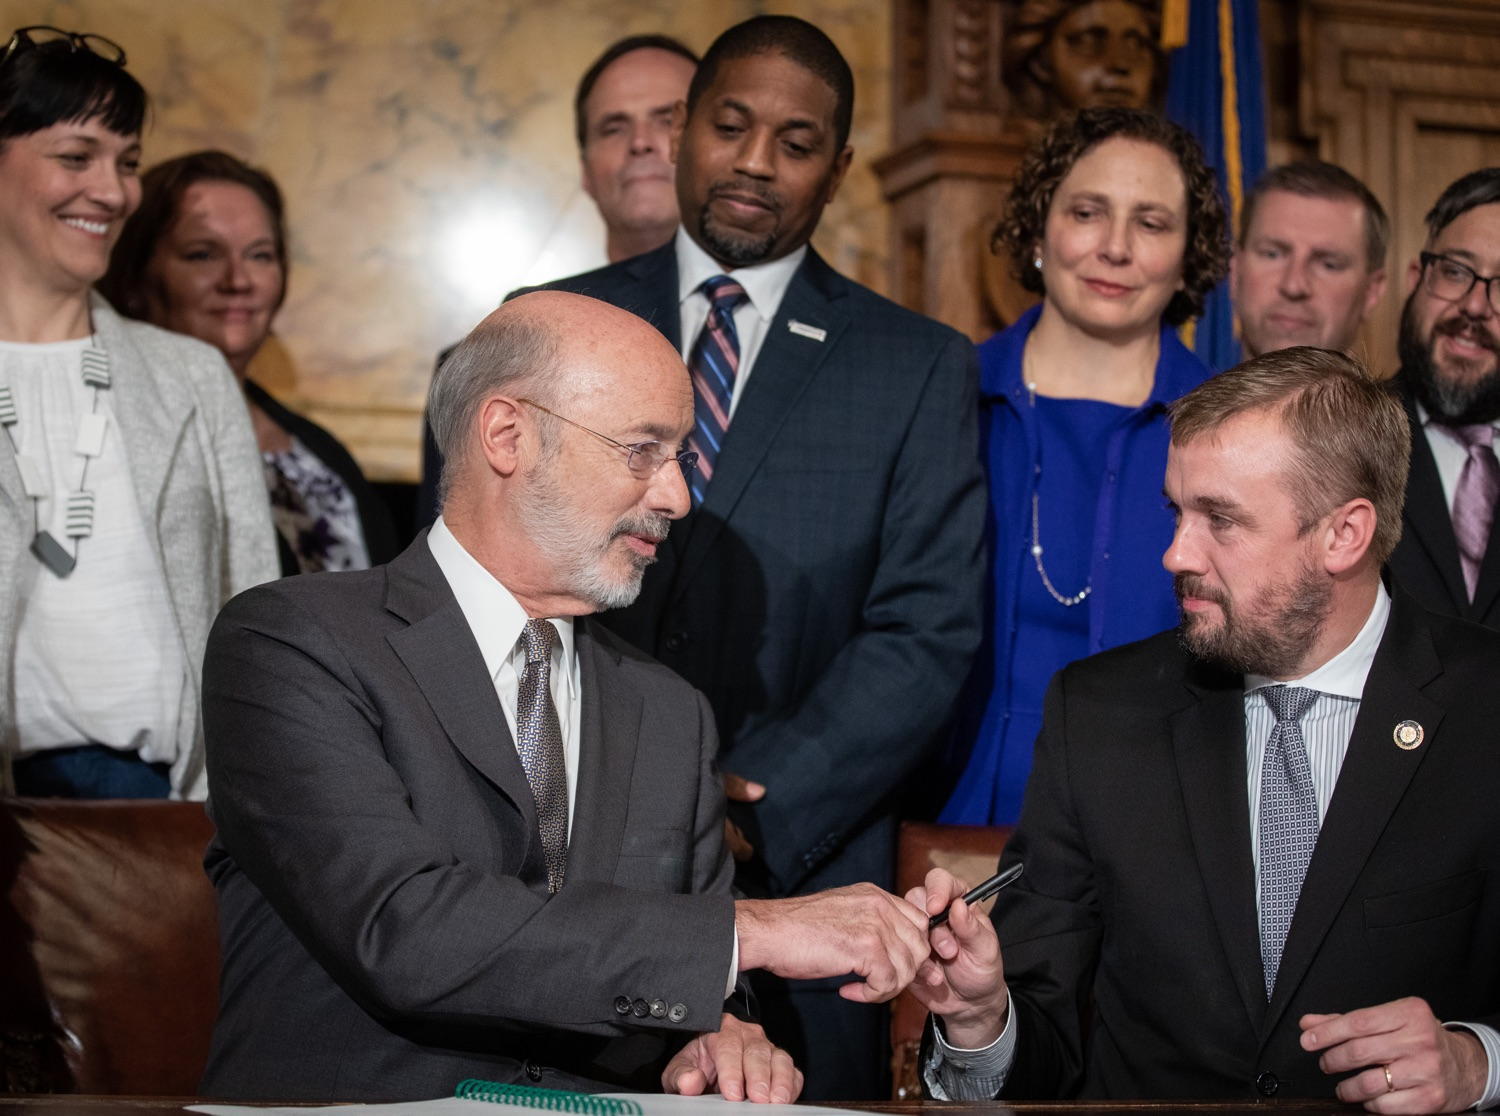 "<a href=""http://filesource.abacast.com/commonwealthofpa/photo/17554_gov_voter_reform_bill_dz_013.jpg"" target=""_blank"">⇣ Download Photo<br></a>Harrisburg, PA  Governor Tom Wolf signs the Election Reform Bill. Governor Wolf made voting more convenient and secure by signing Act 77 of 2019, the most significant improvement to Pennsylvanias elections in more than 80 years. The bipartisan compromise legislation takes effect for the April 2020 primary election and makes Pennsylvania a national leader with voter-friendly election reforms."